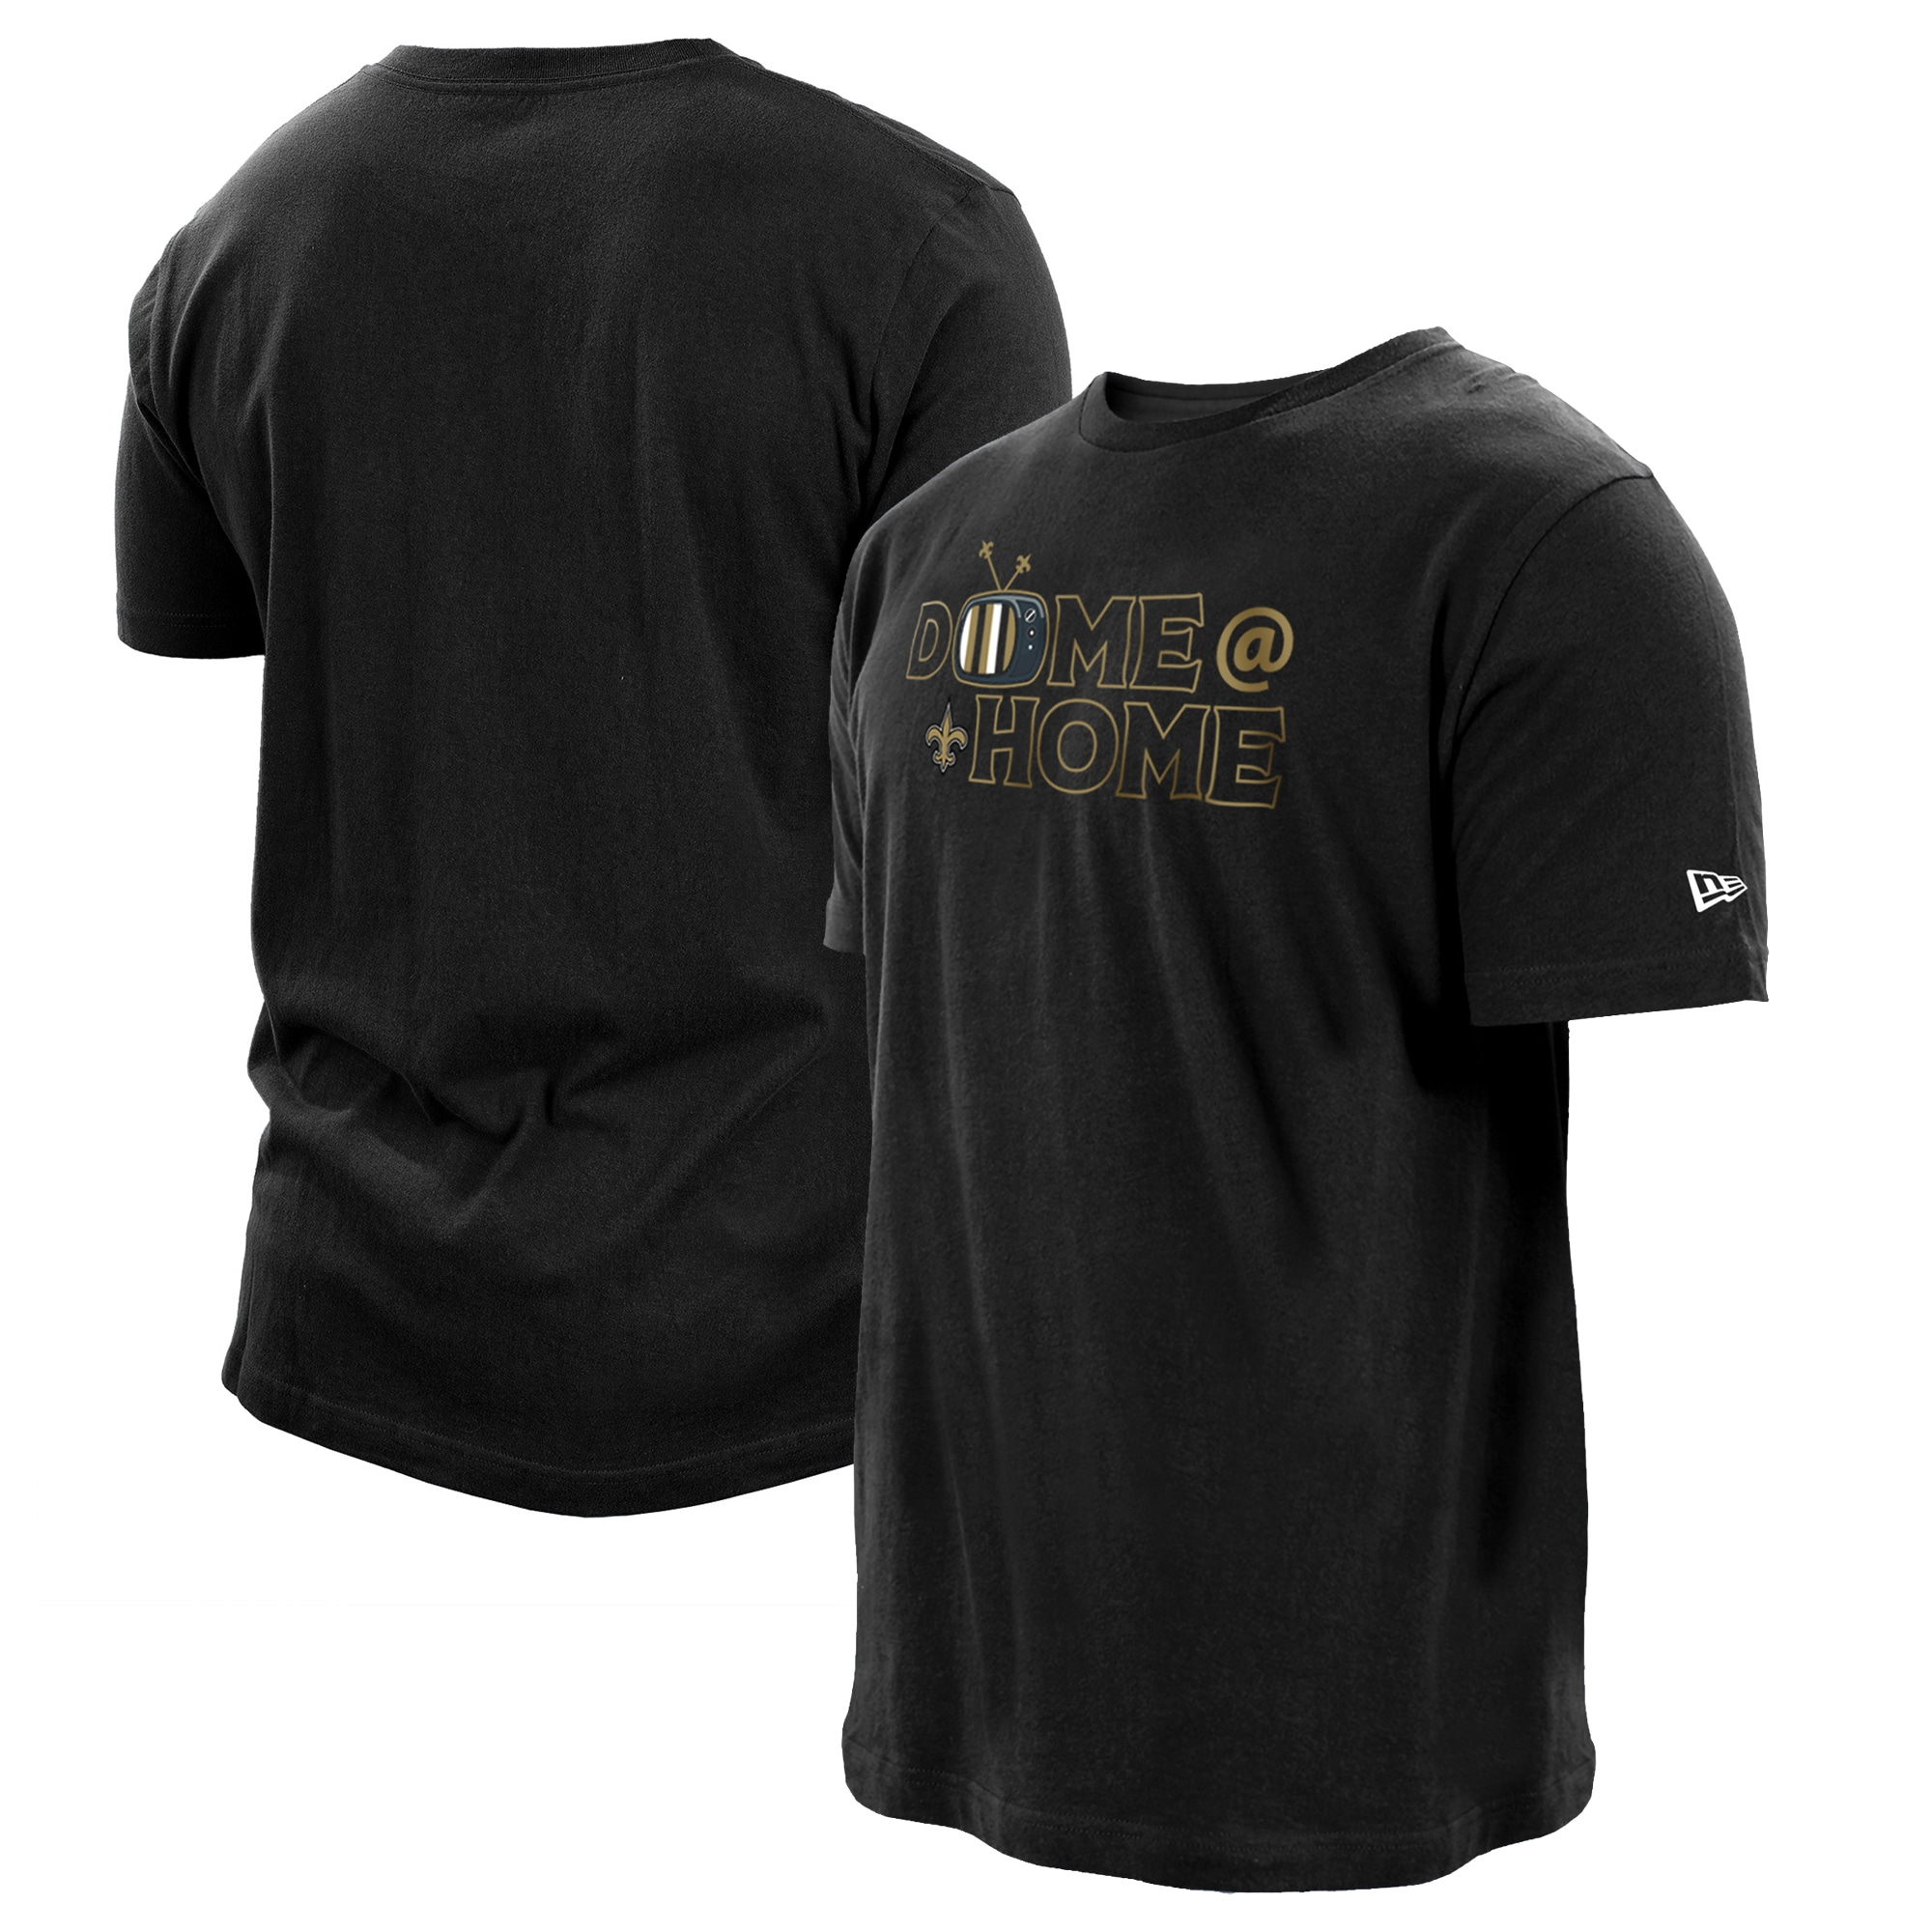 New Orleans Saints New Era Dome at Home T-Shirt - Black